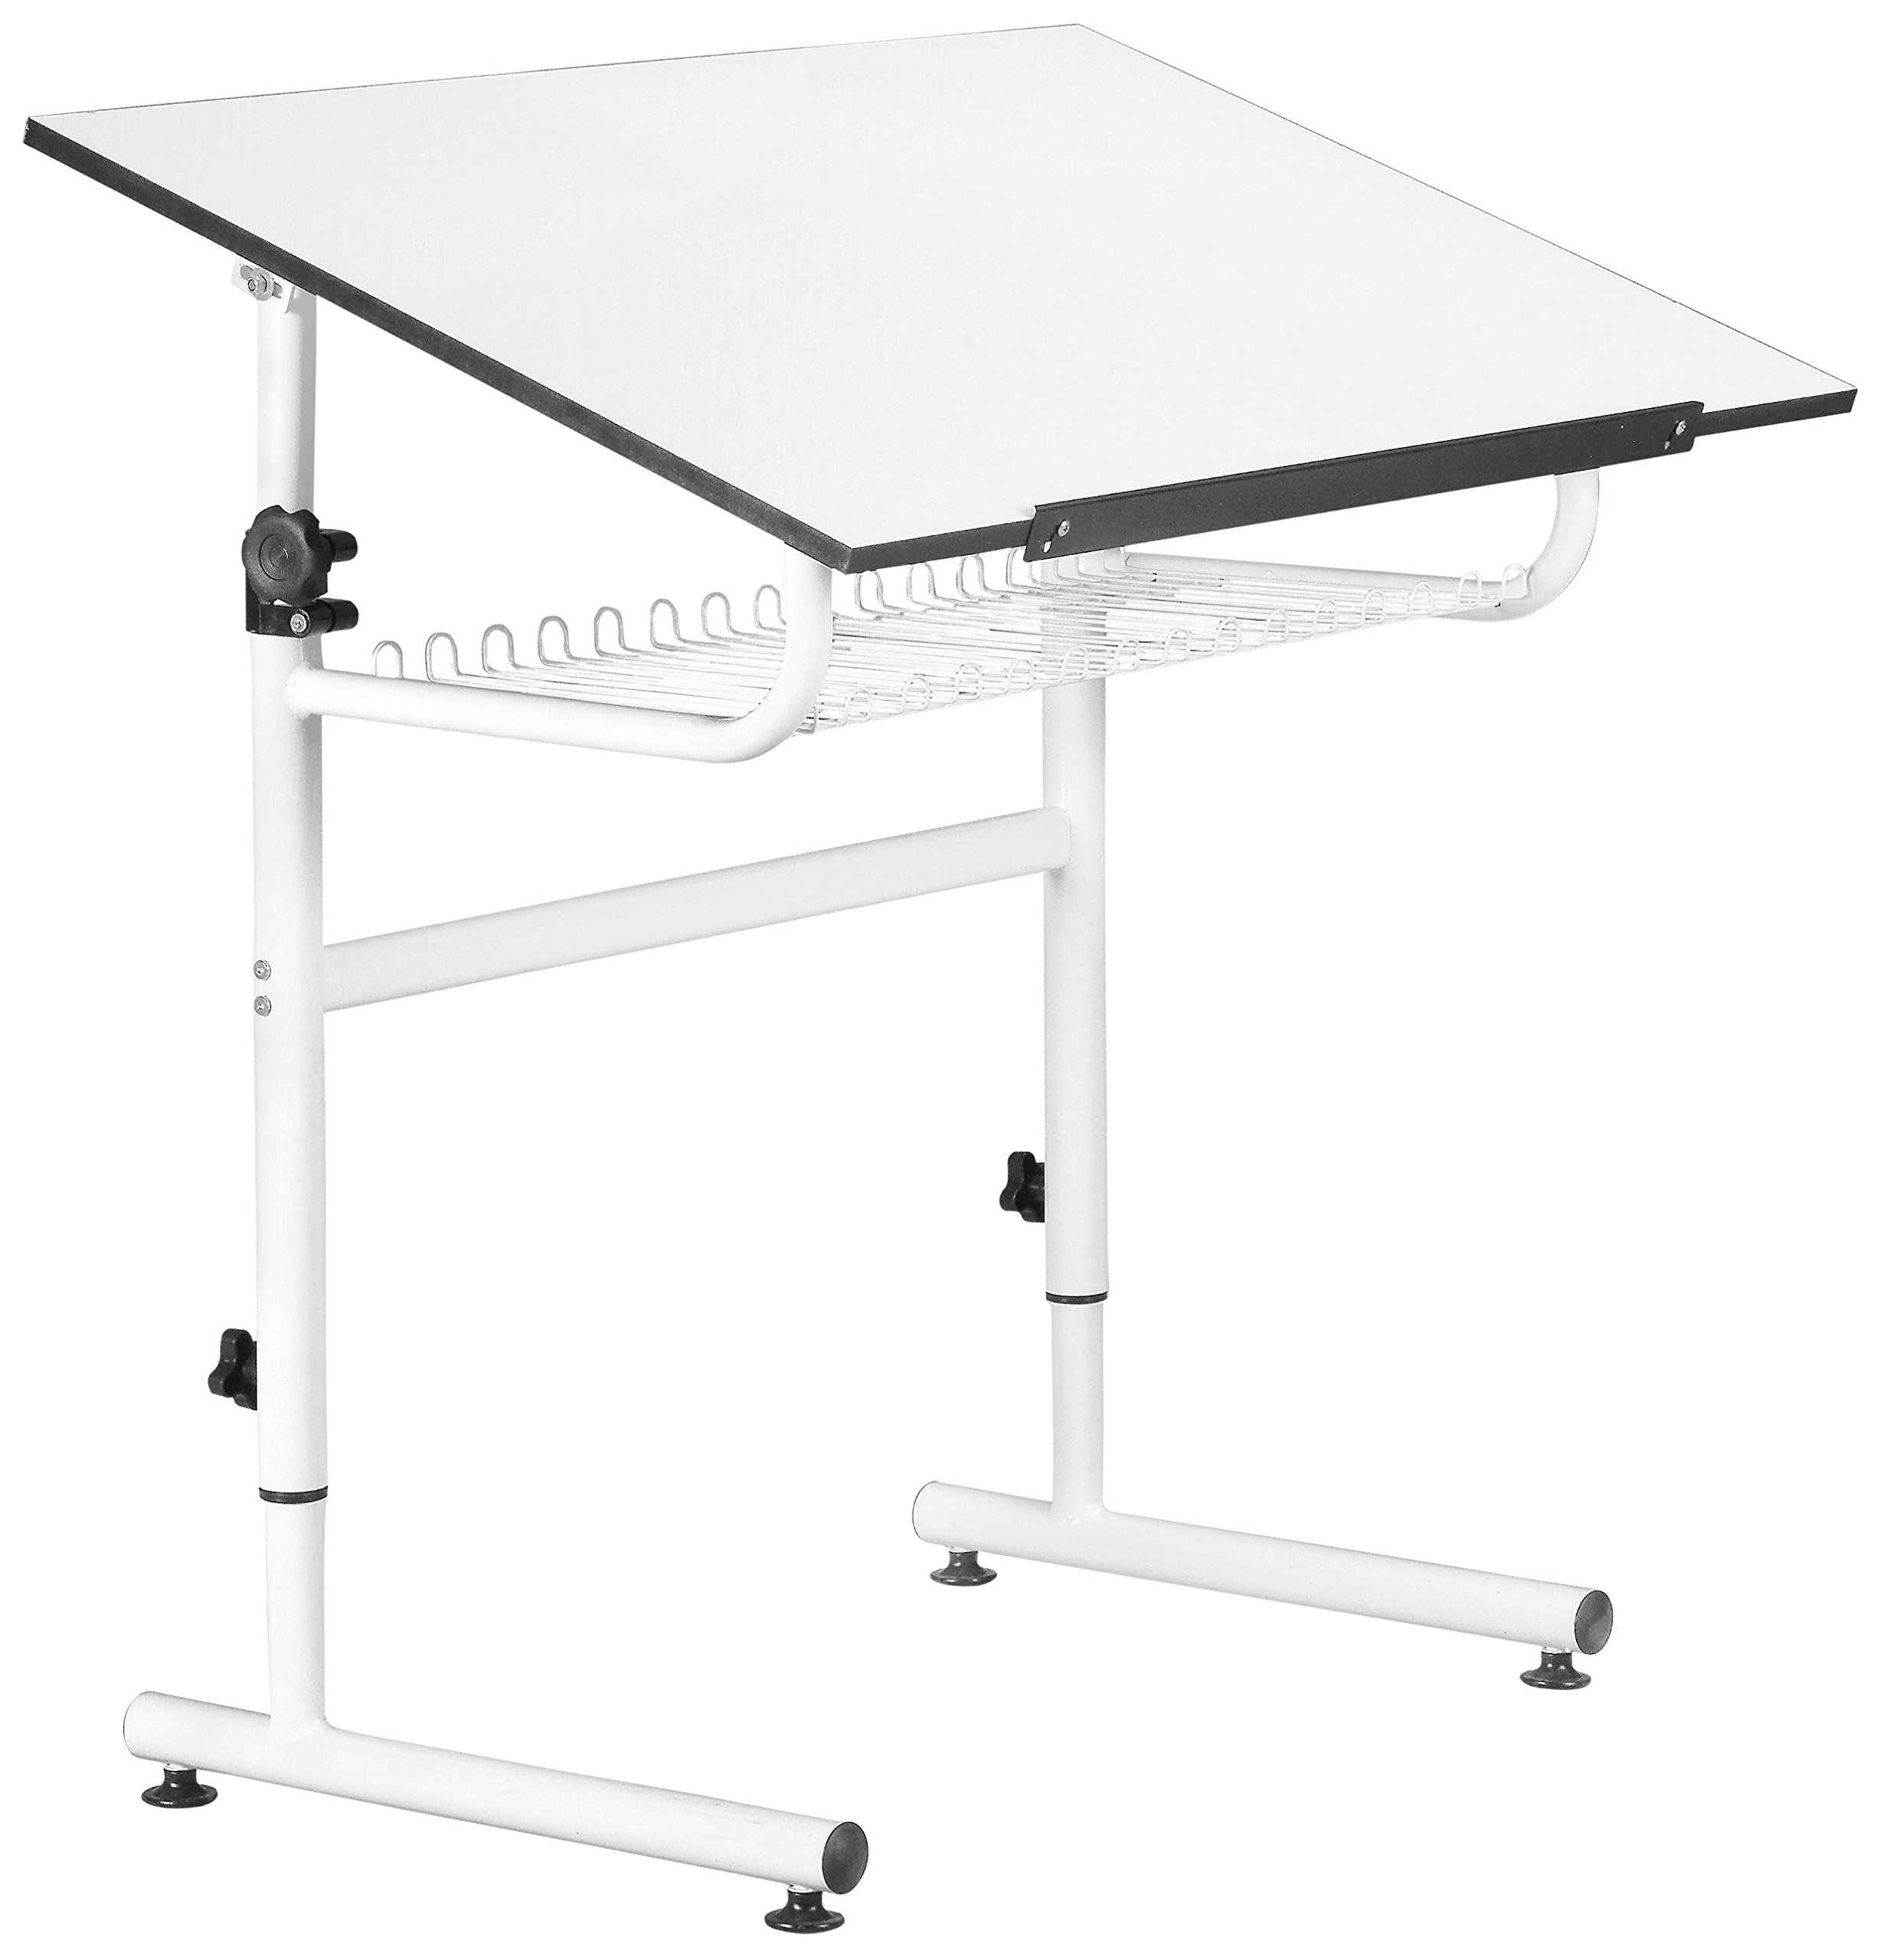 Martin Universal Design U-DS1696 Gallery Art Table, White by Martin Universal Design